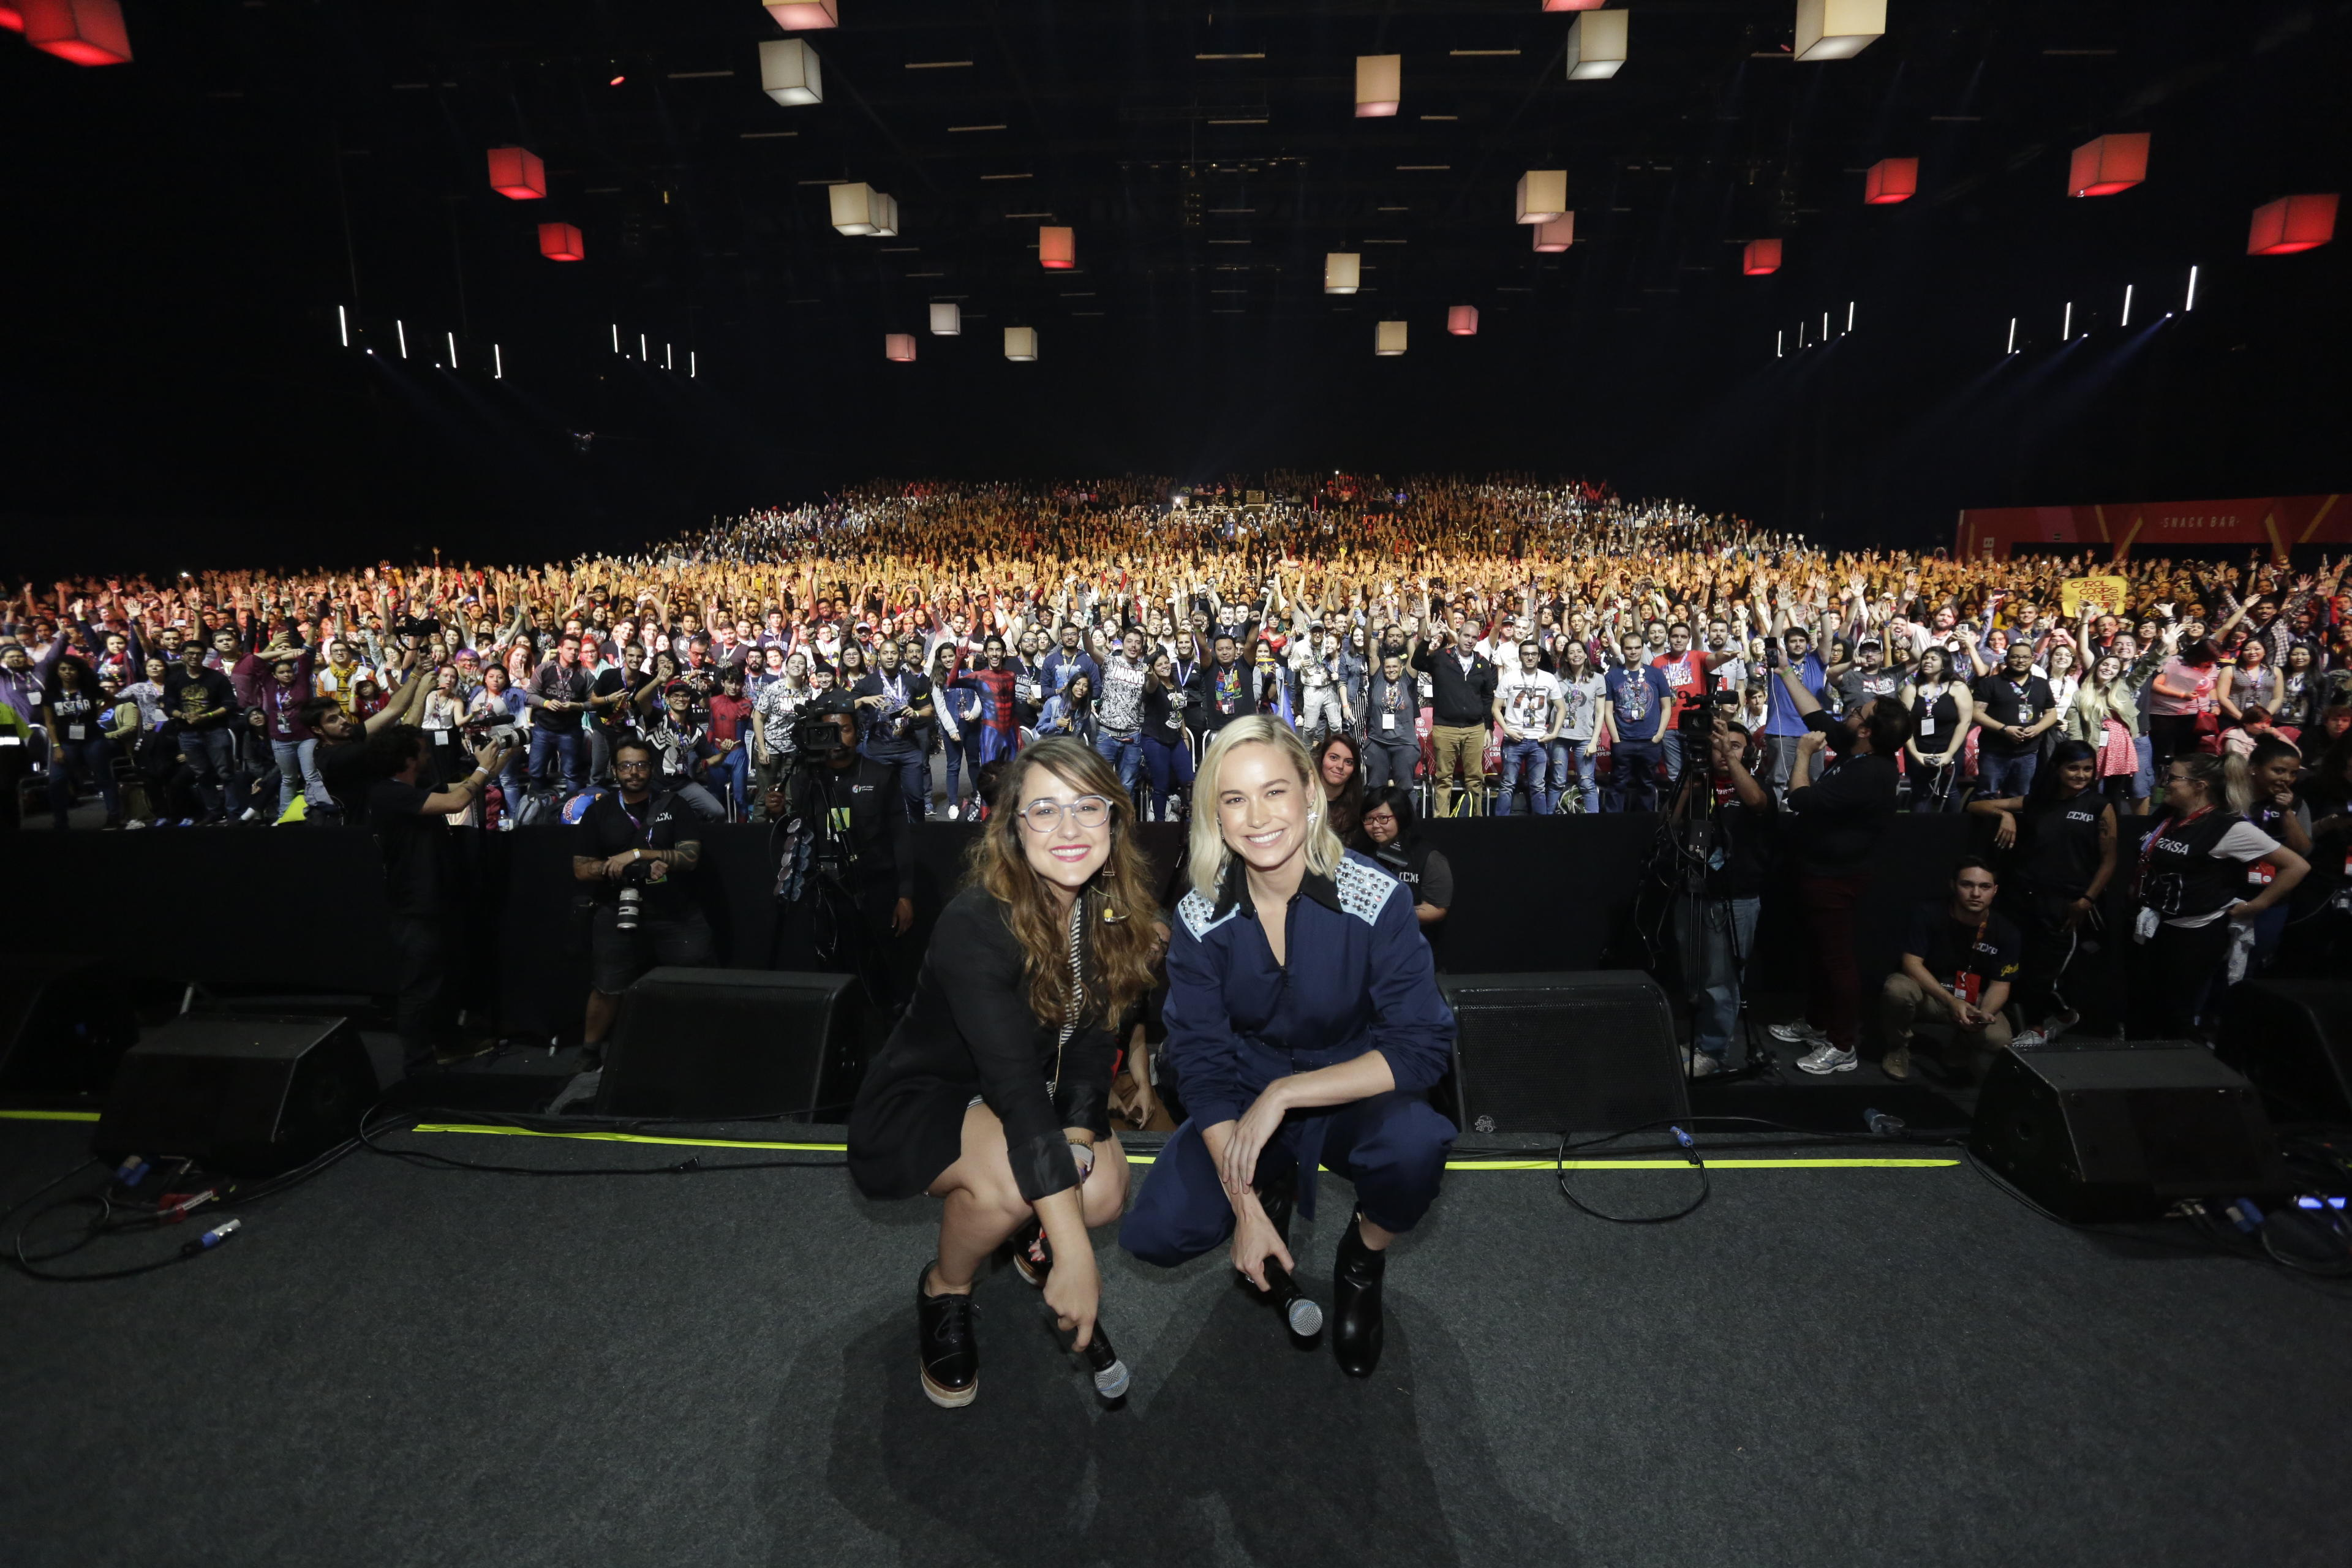 Brie Larson snaps photos with fans at CCXP18 in São Paulo